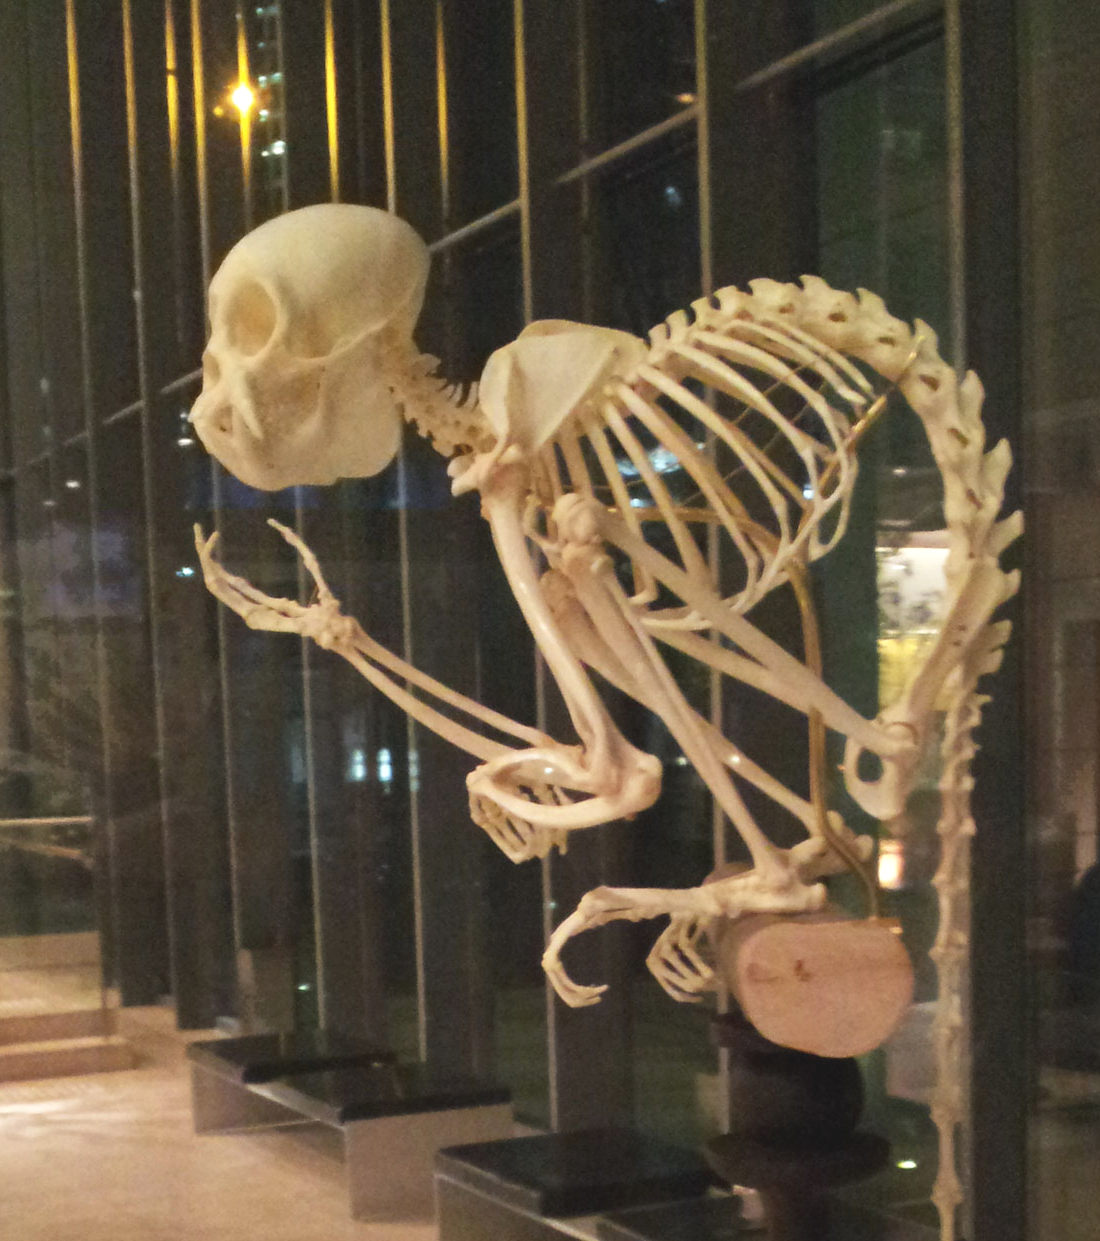 Monkey skeleton at the Akasaka Intercity Bldg. - Nov. 19, 2014